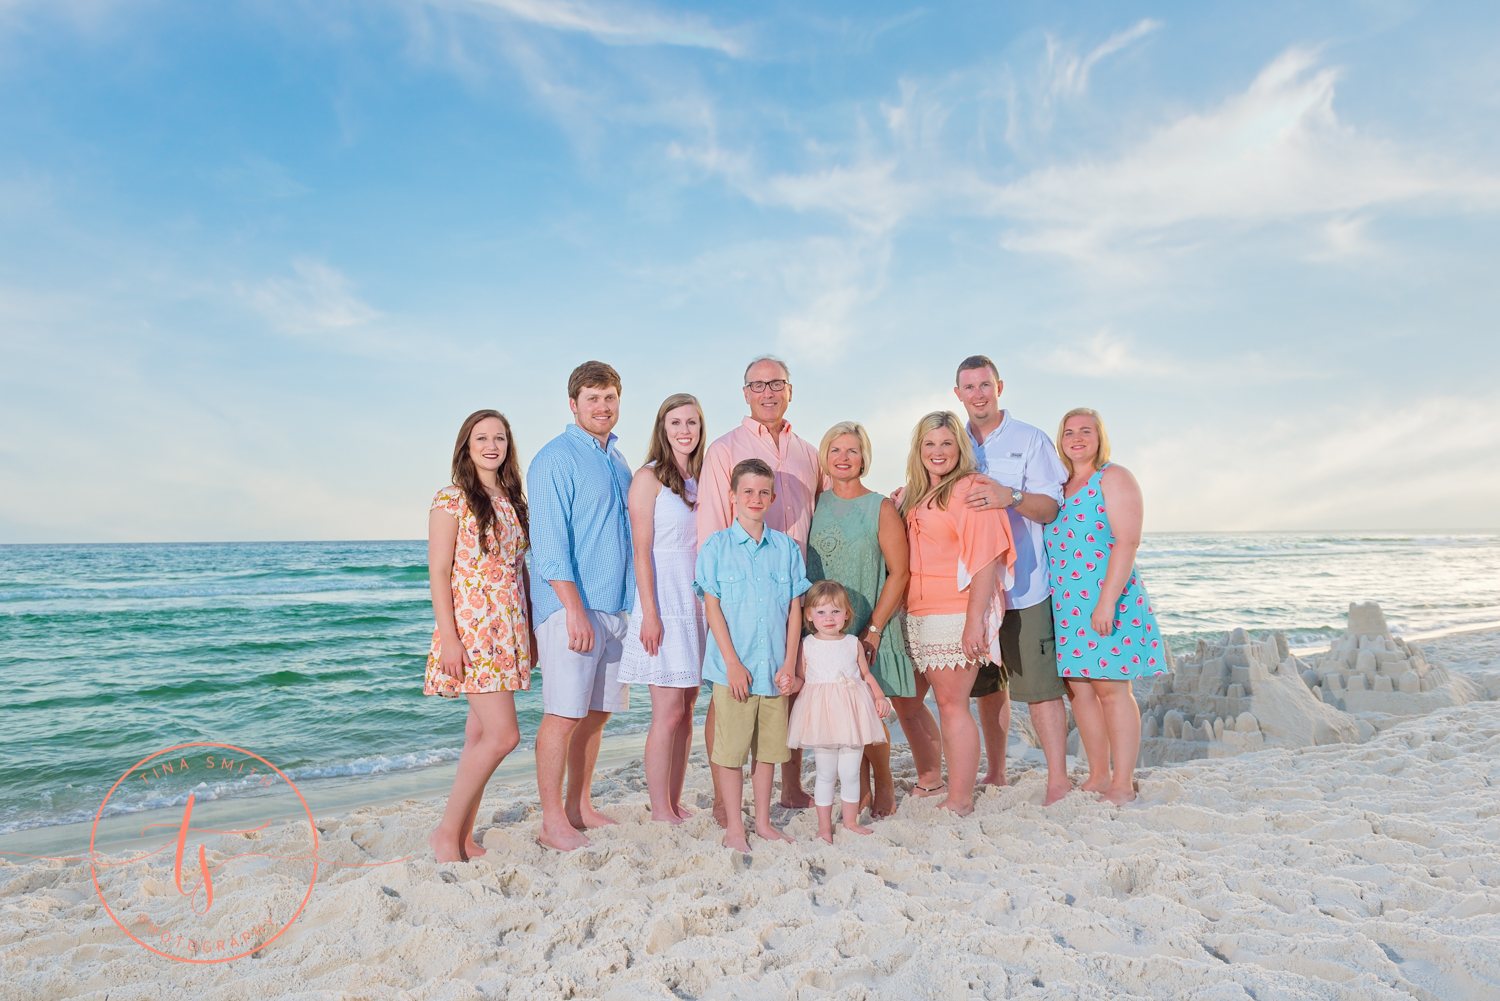 secrest family beach photography posing at waters edge